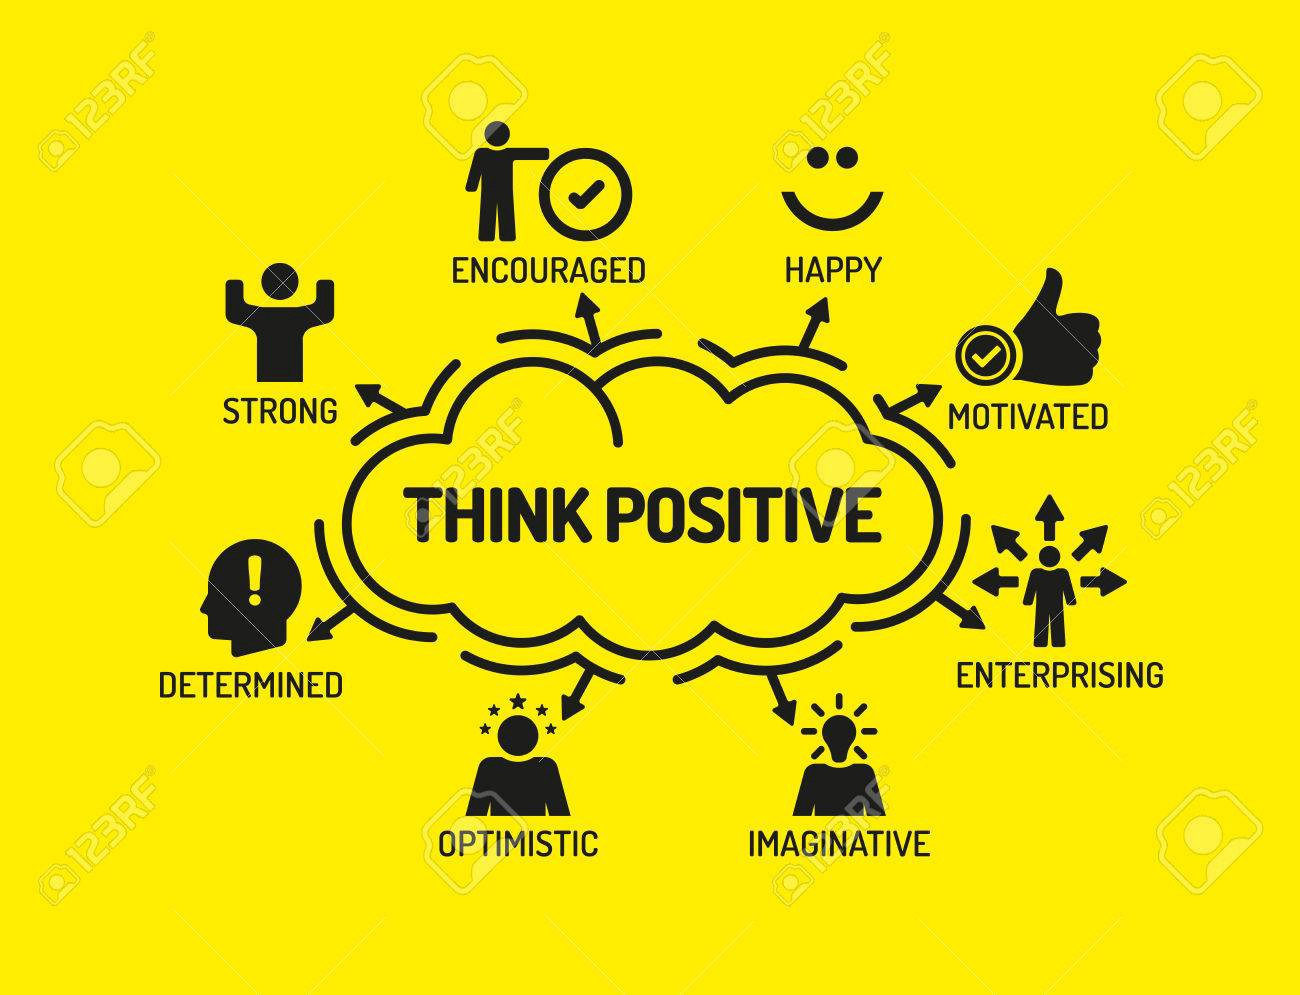 Positive Thinking And Positive Attitude: - Zikikhan - Medium